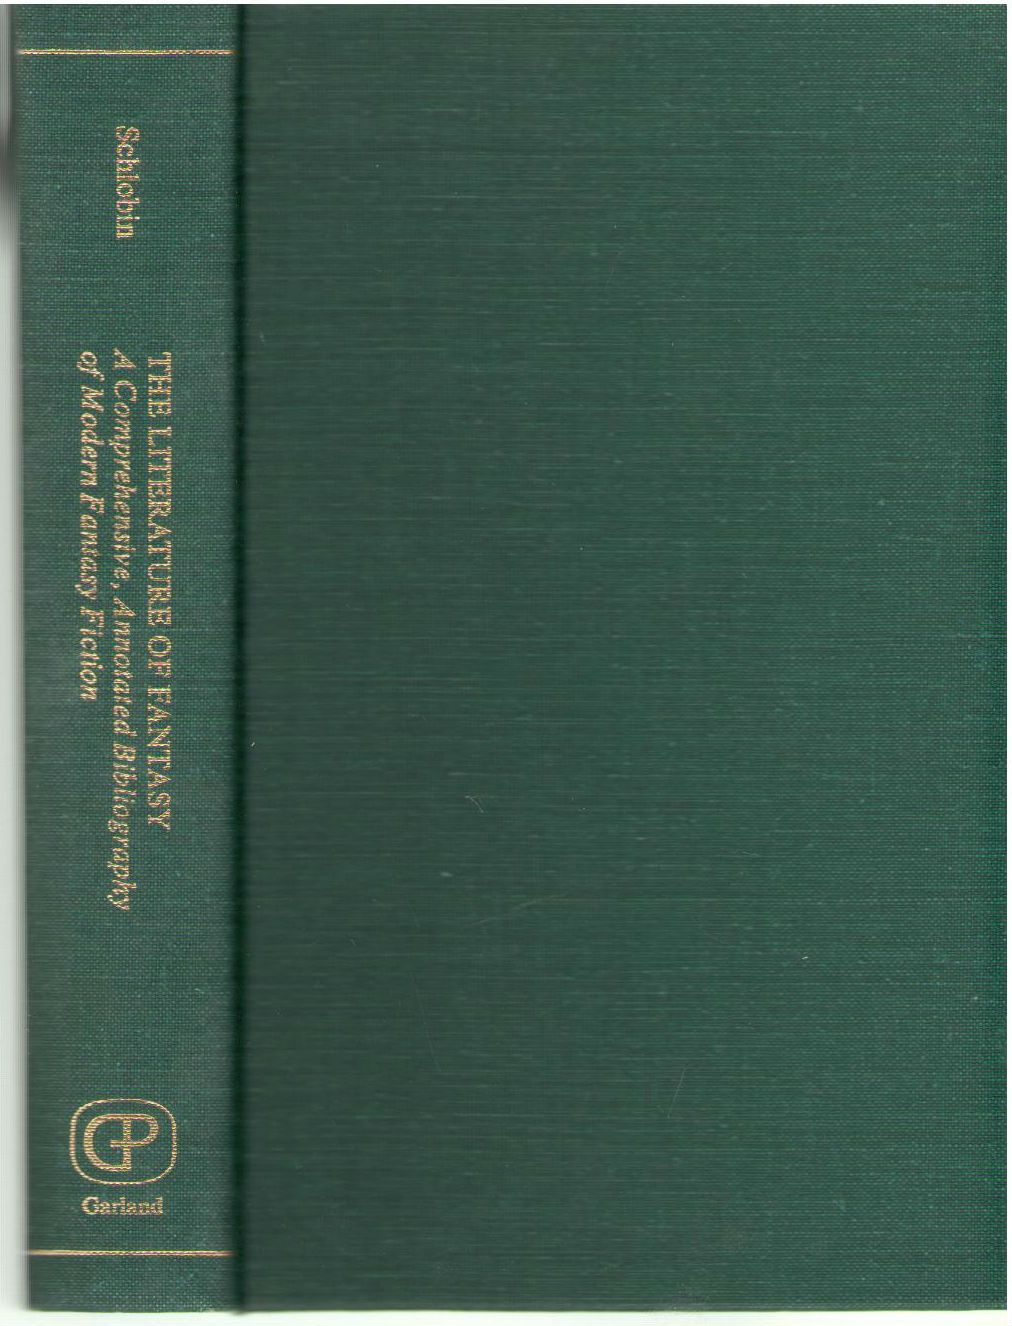 The literature of fantasy A comprehensive, annotated bibliography of modern fant, Schlobin, Roger C